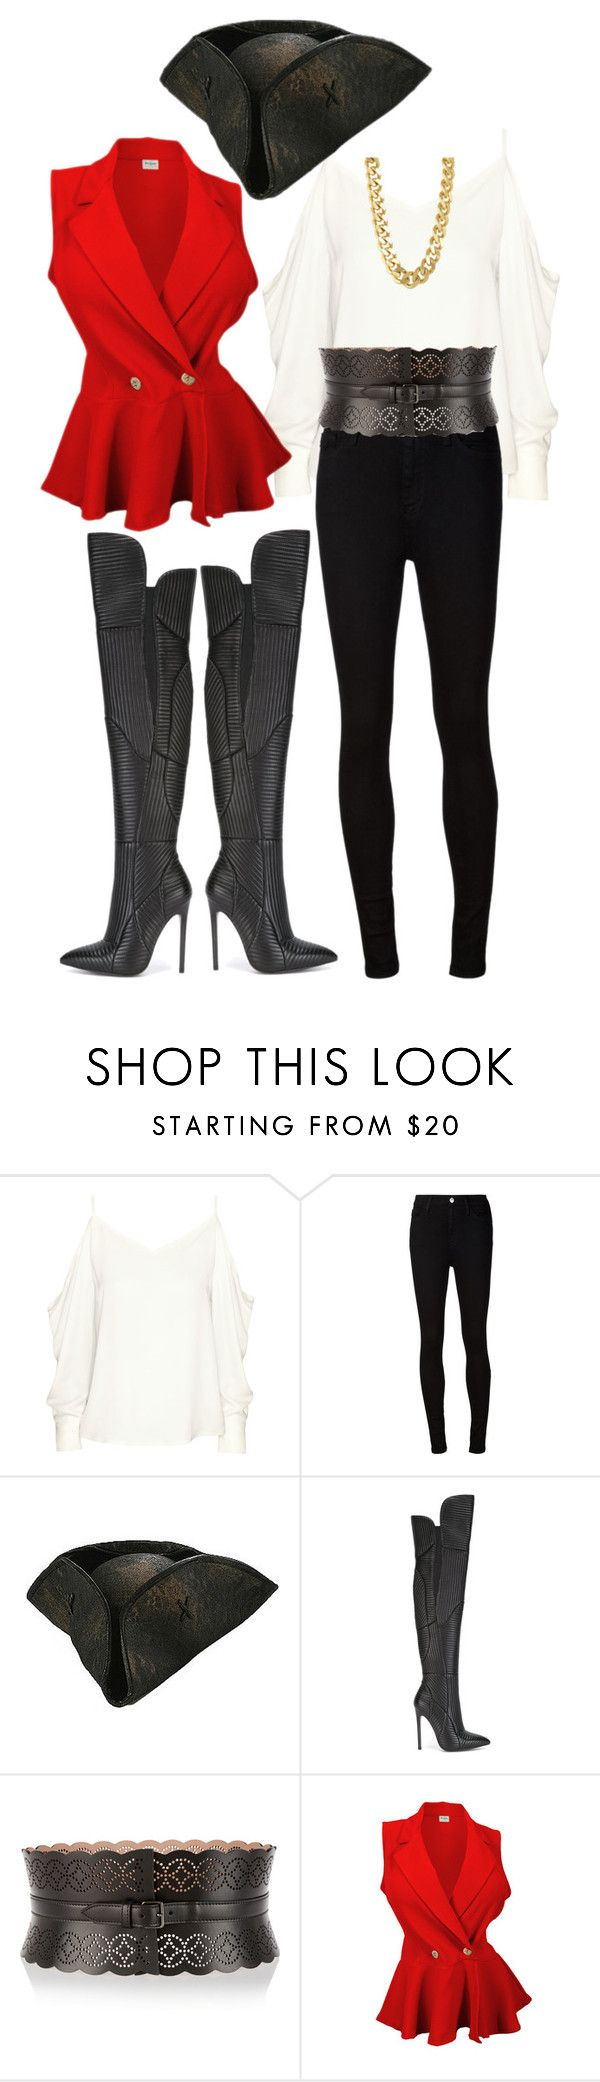 """Pirate Costume"" by yoyostyle ❤ liked on Polyvore featuring H&M, AG Adriano Goldschmied, Gianni Renzi, Alaïa and CC SKYE"